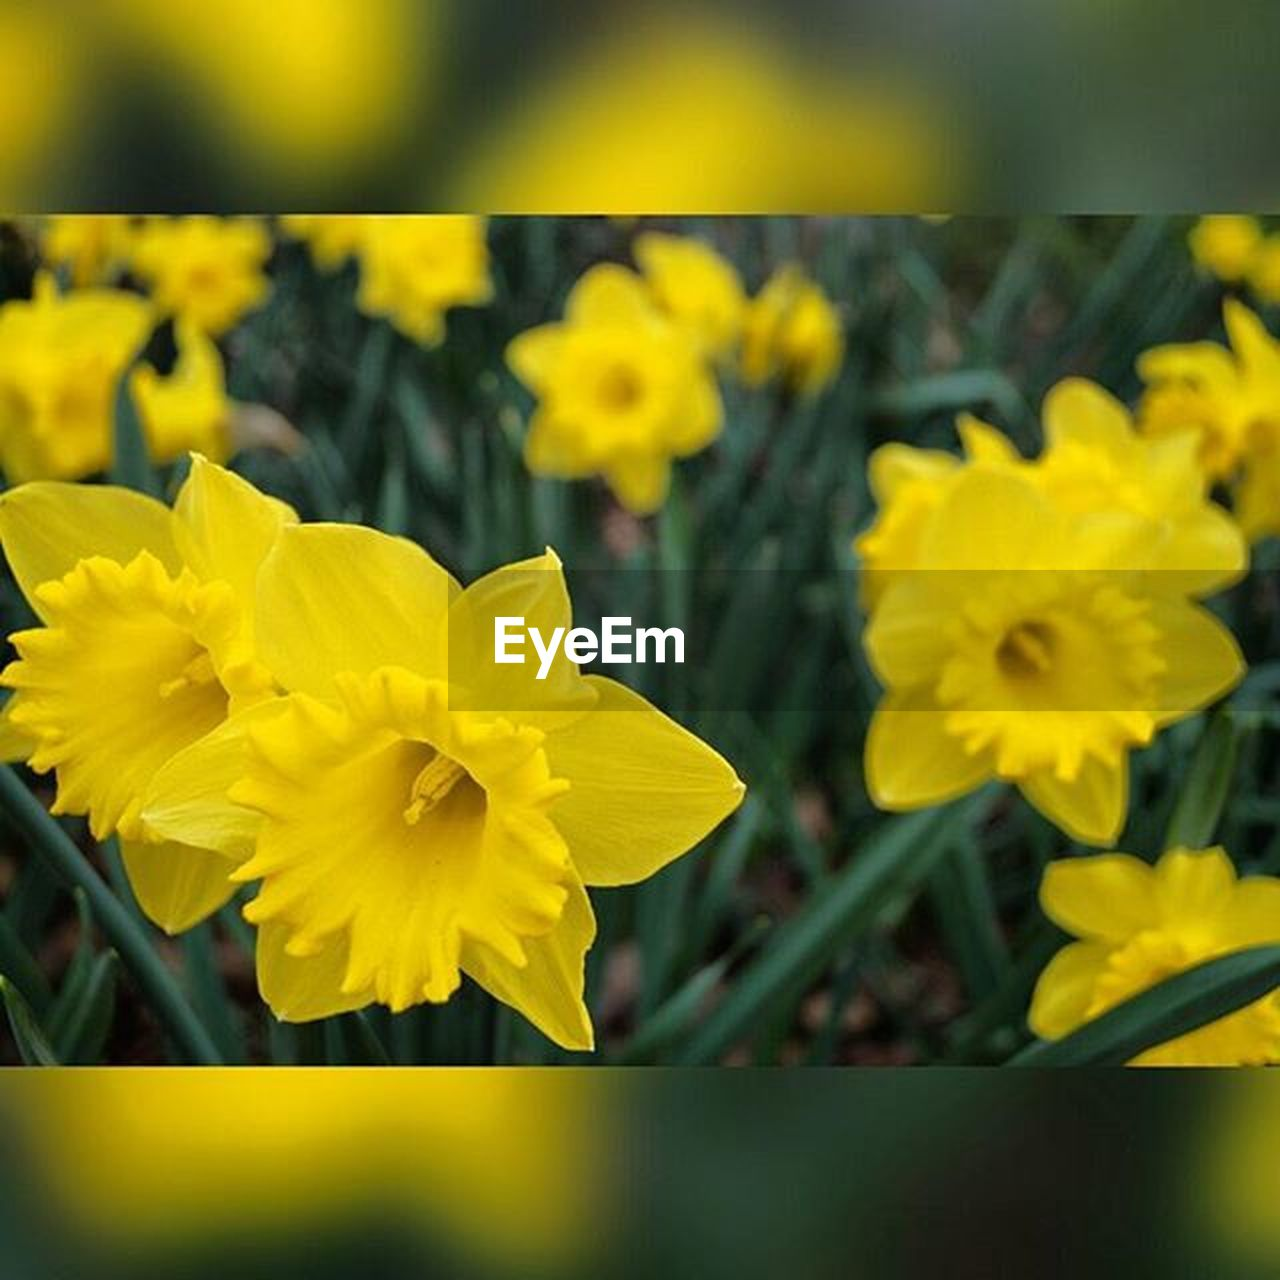 flower, yellow, nature, fragility, beauty in nature, petal, freshness, growth, vibrant color, plant, blossom, daffodil, selective focus, day, flower head, outdoors, close-up, springtime, no people